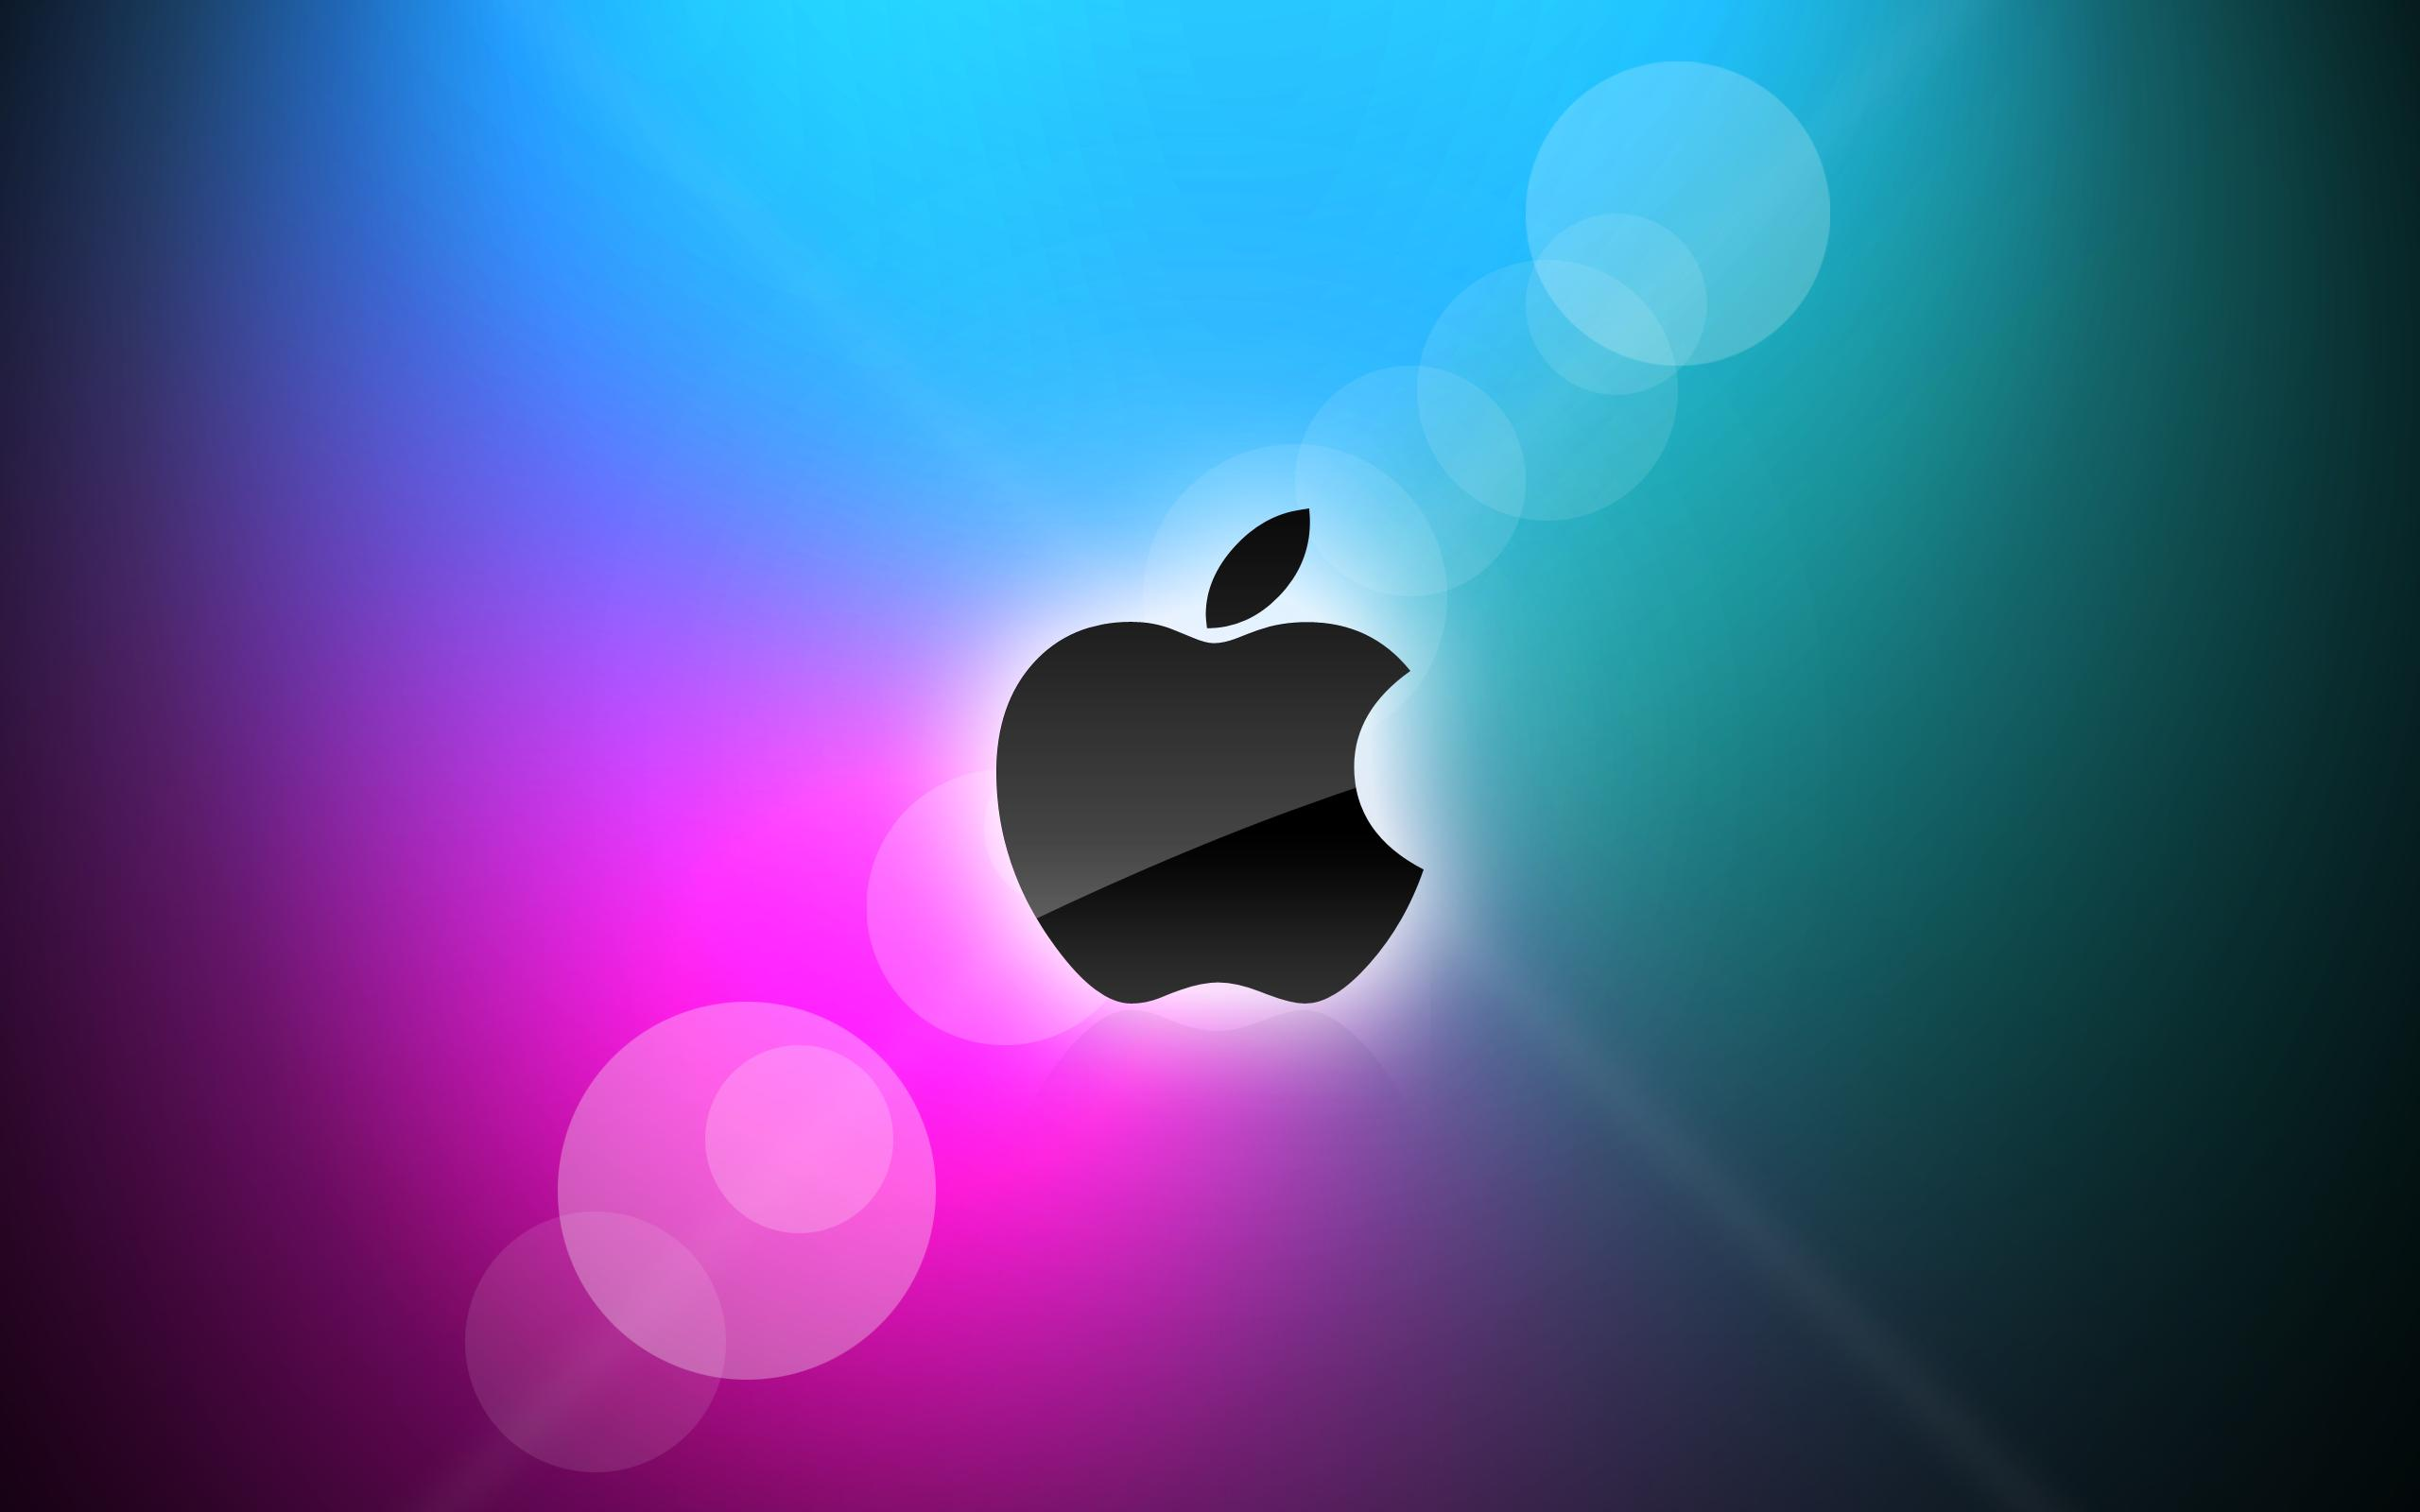 Wallpapers For Apple Wallpaper Cave